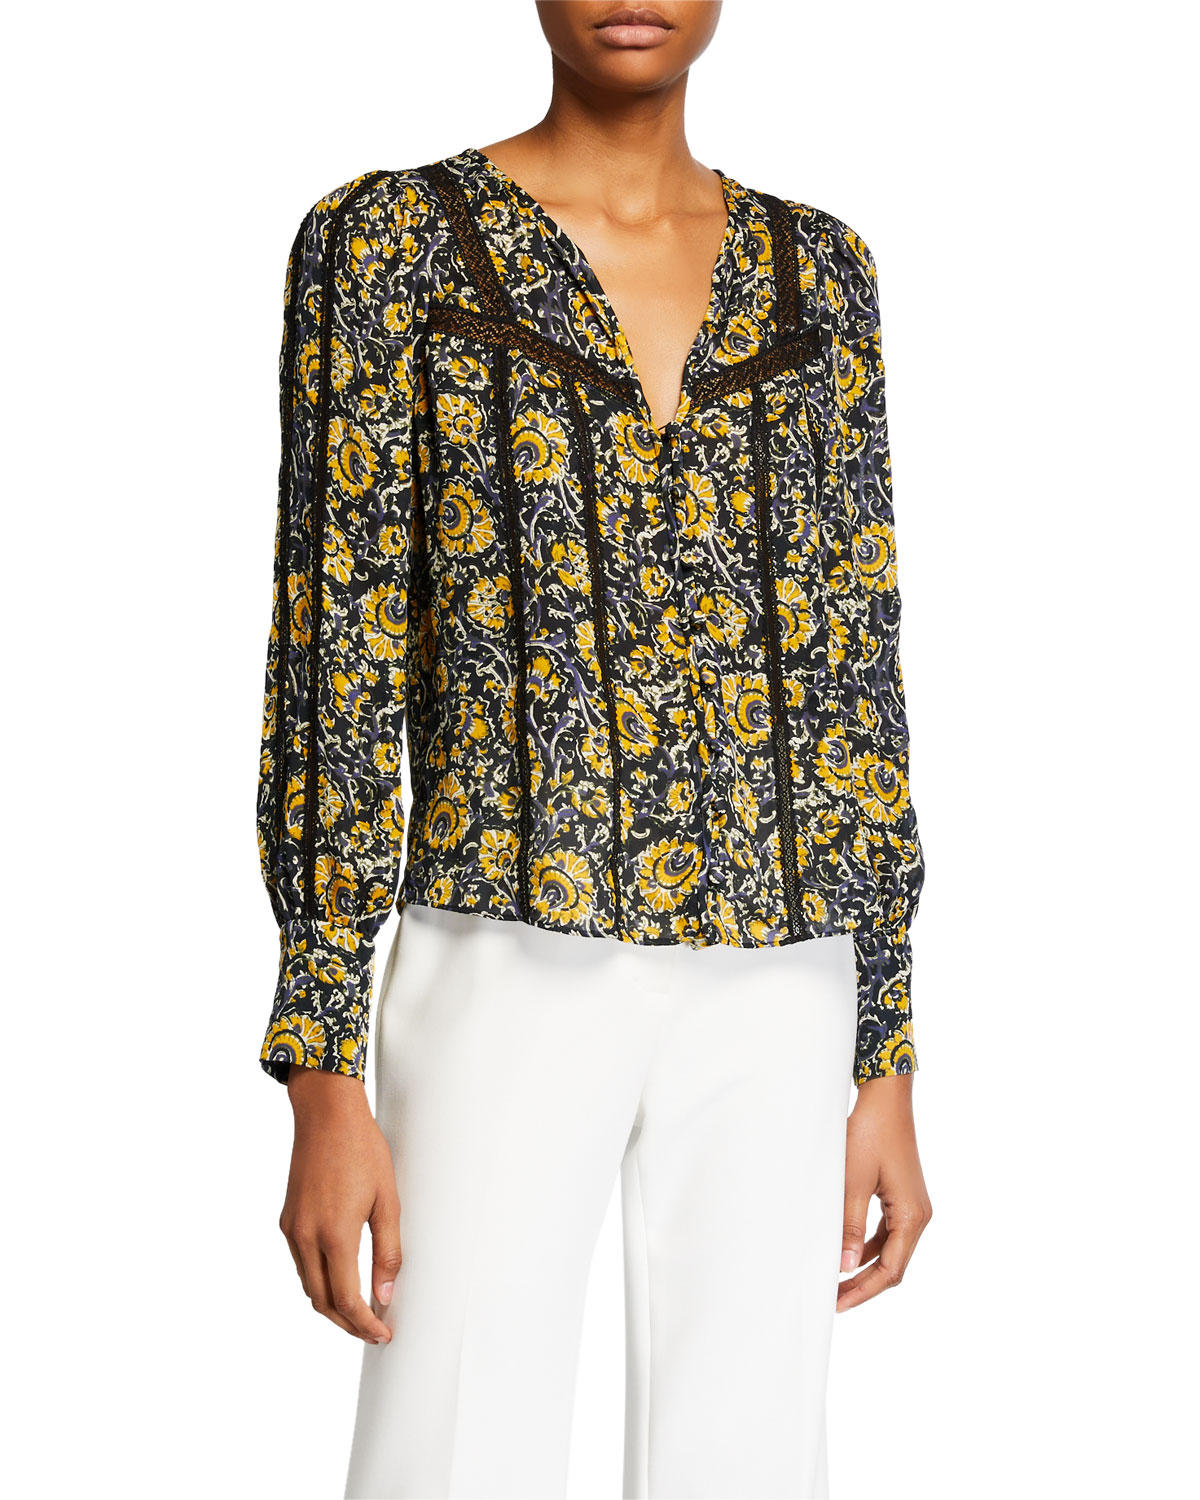 Veronica Beard Tops TARRY PRINTED LACE-INSET BLOUSE